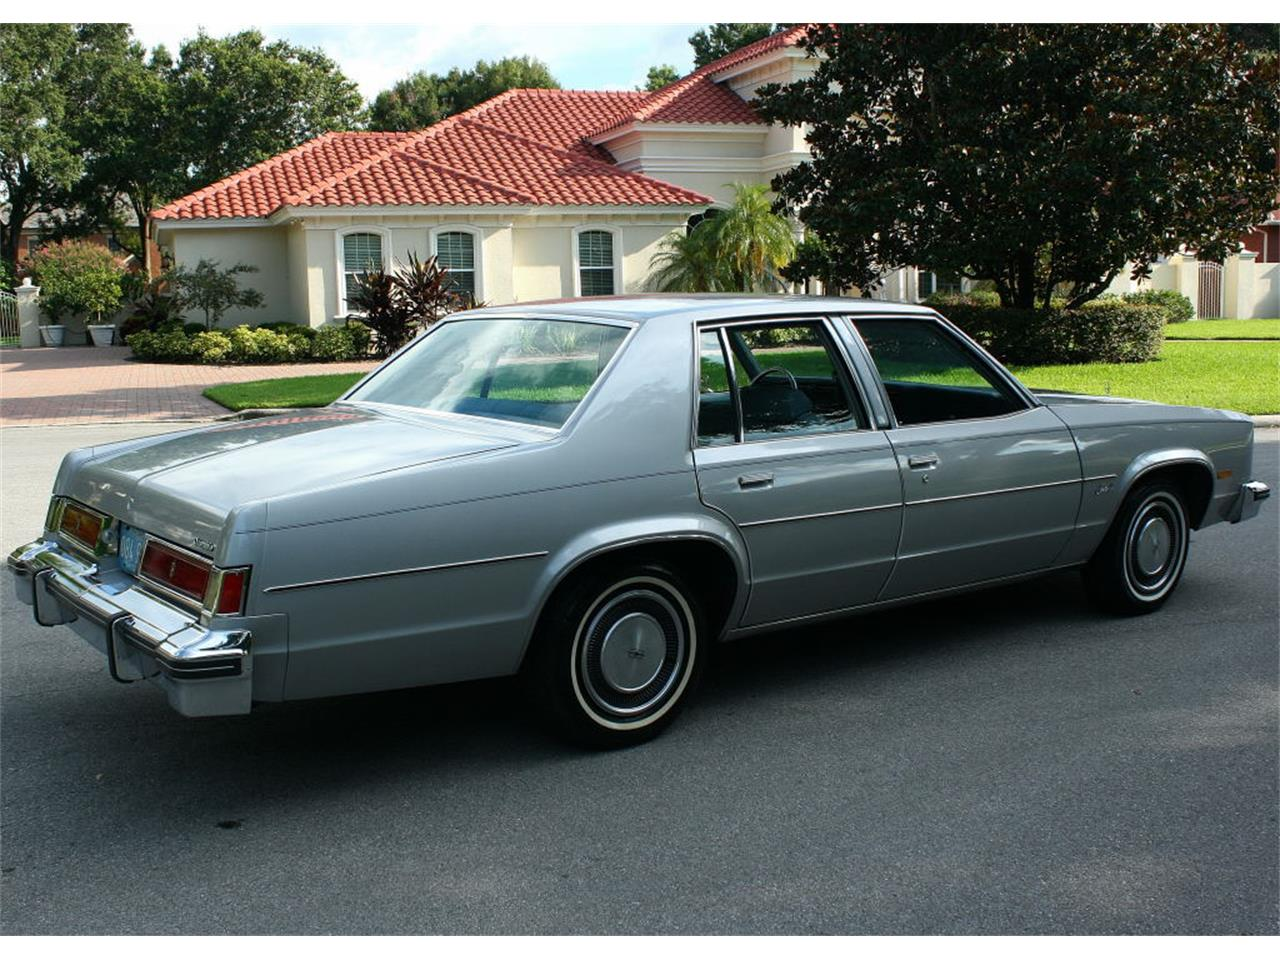 Large Picture of 1977 Oldsmobile Delta 88 located in lakeland Florida - $12,500.00 Offered by MJC Classic Cars - LFEK